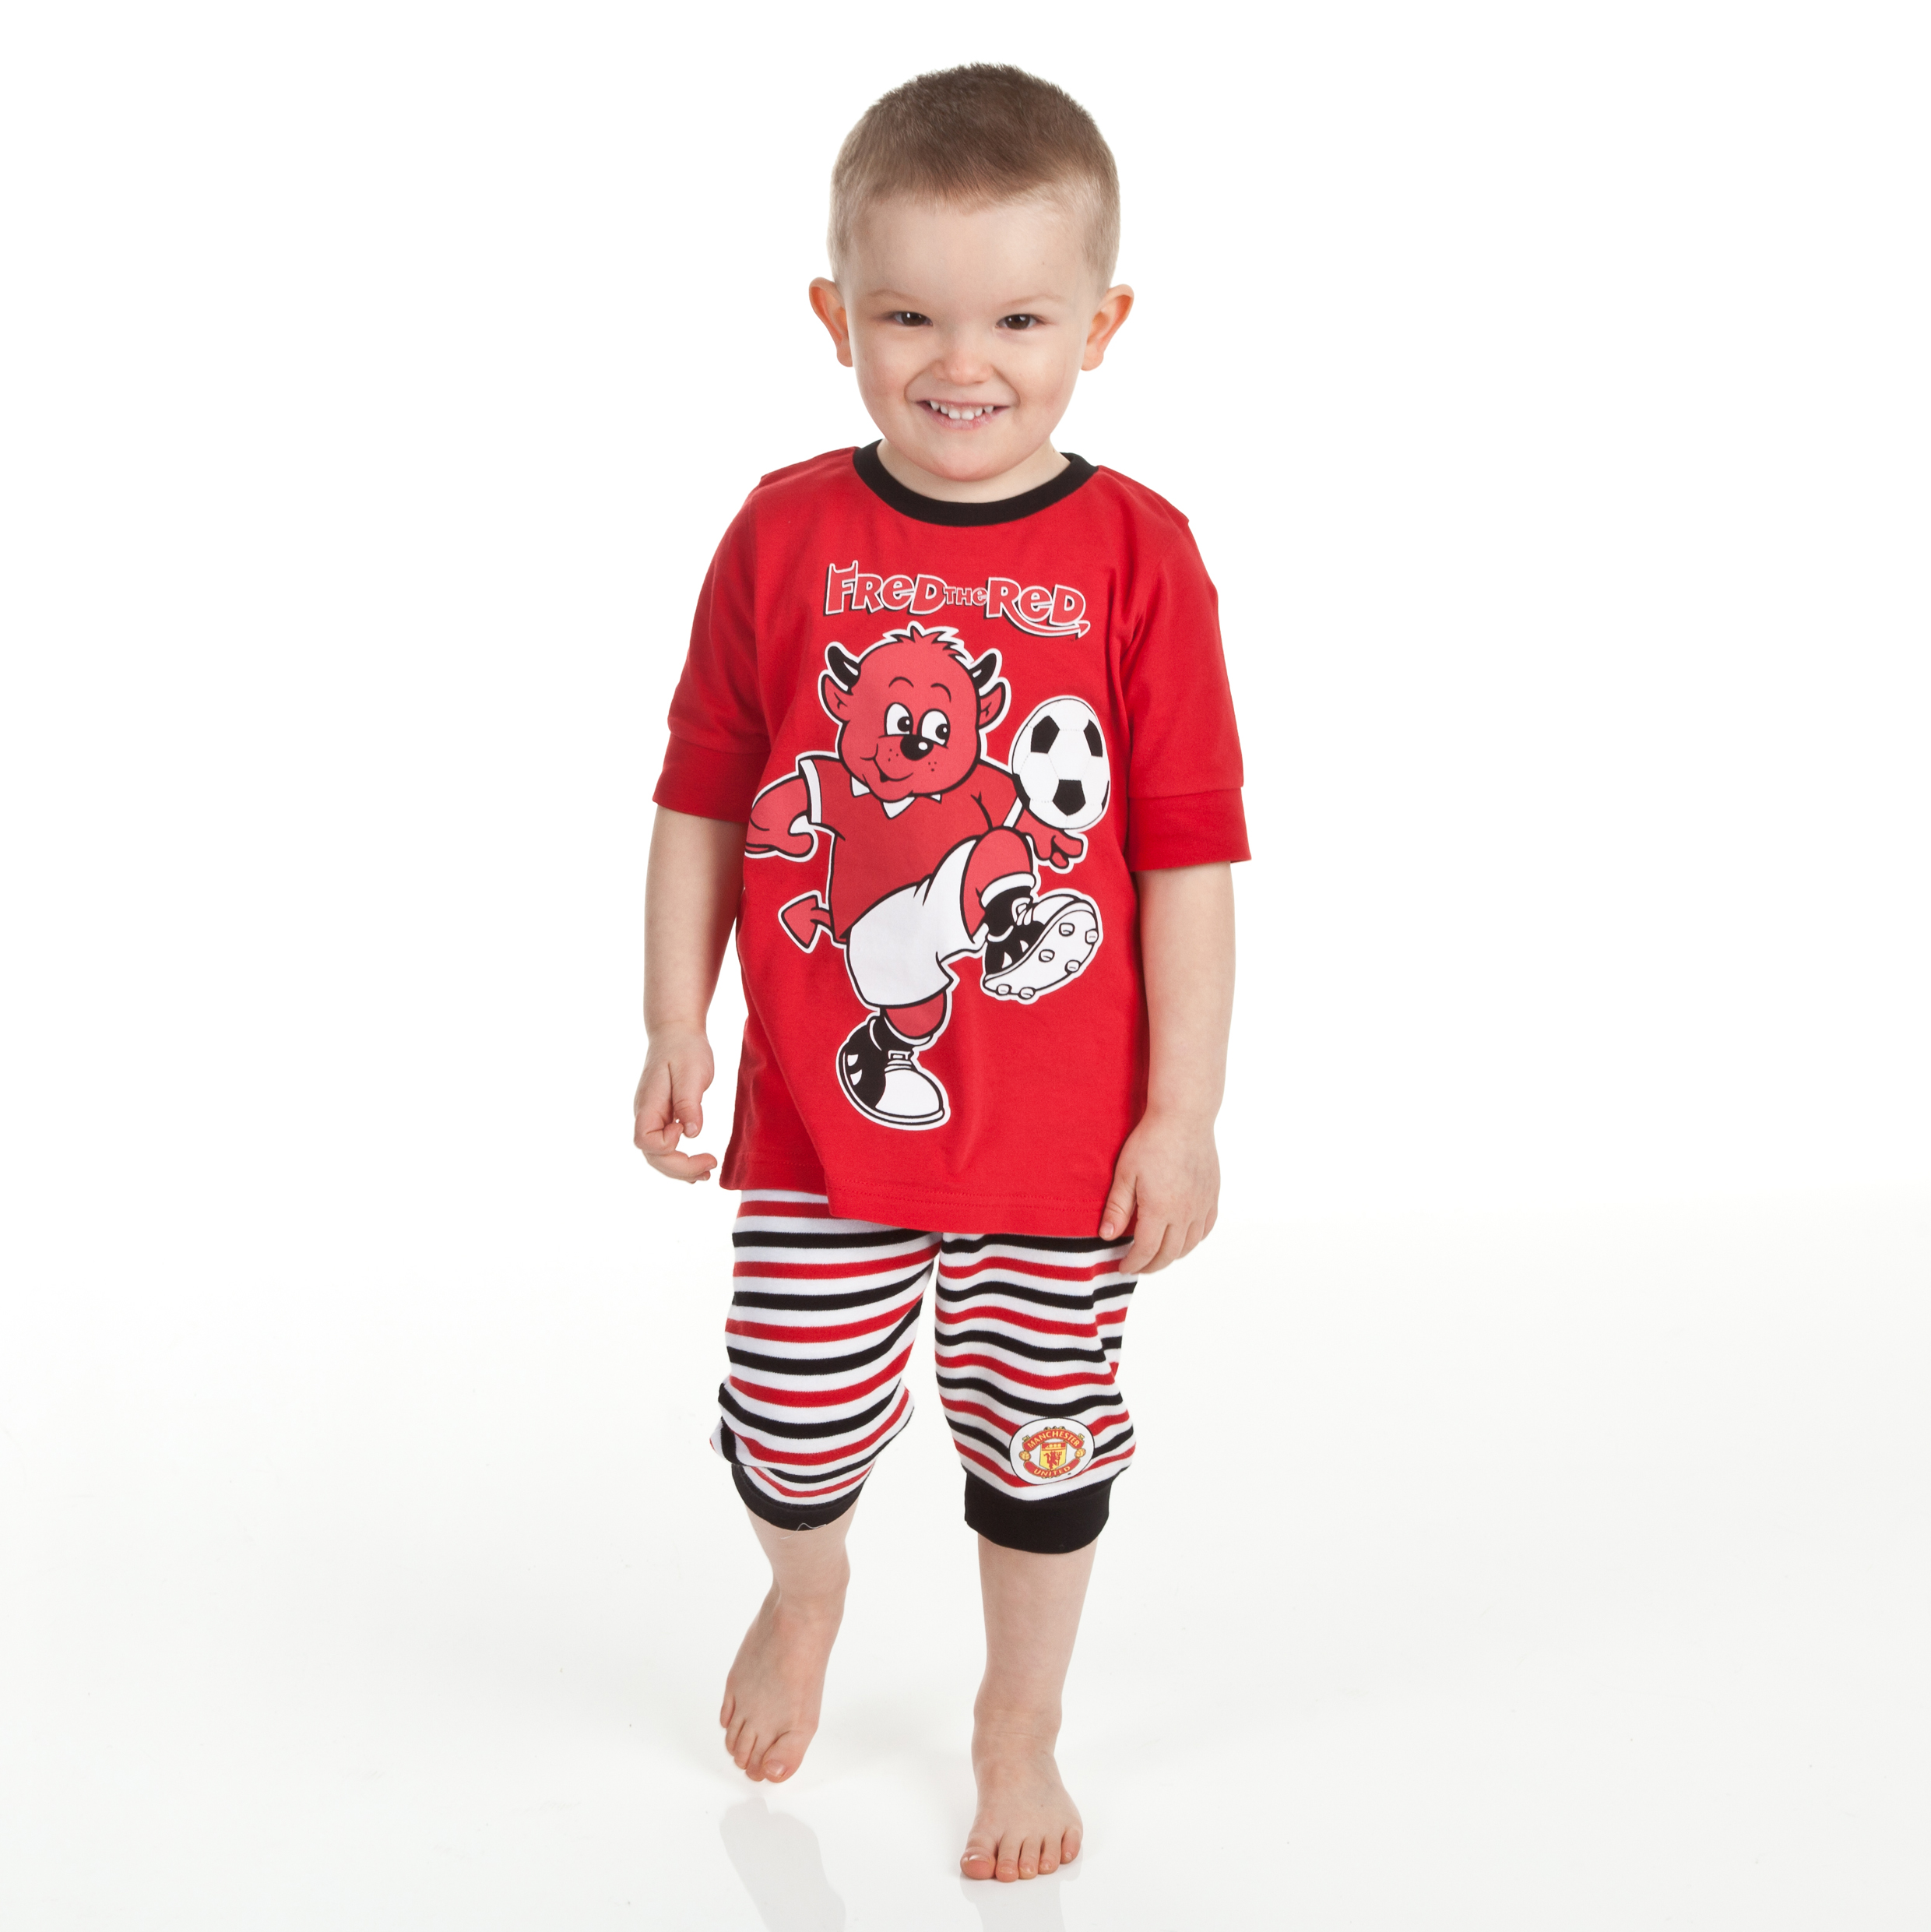 Manchester United Fred The Red Snuggle Fit Pyjamas - Red/Black - Infant Boys